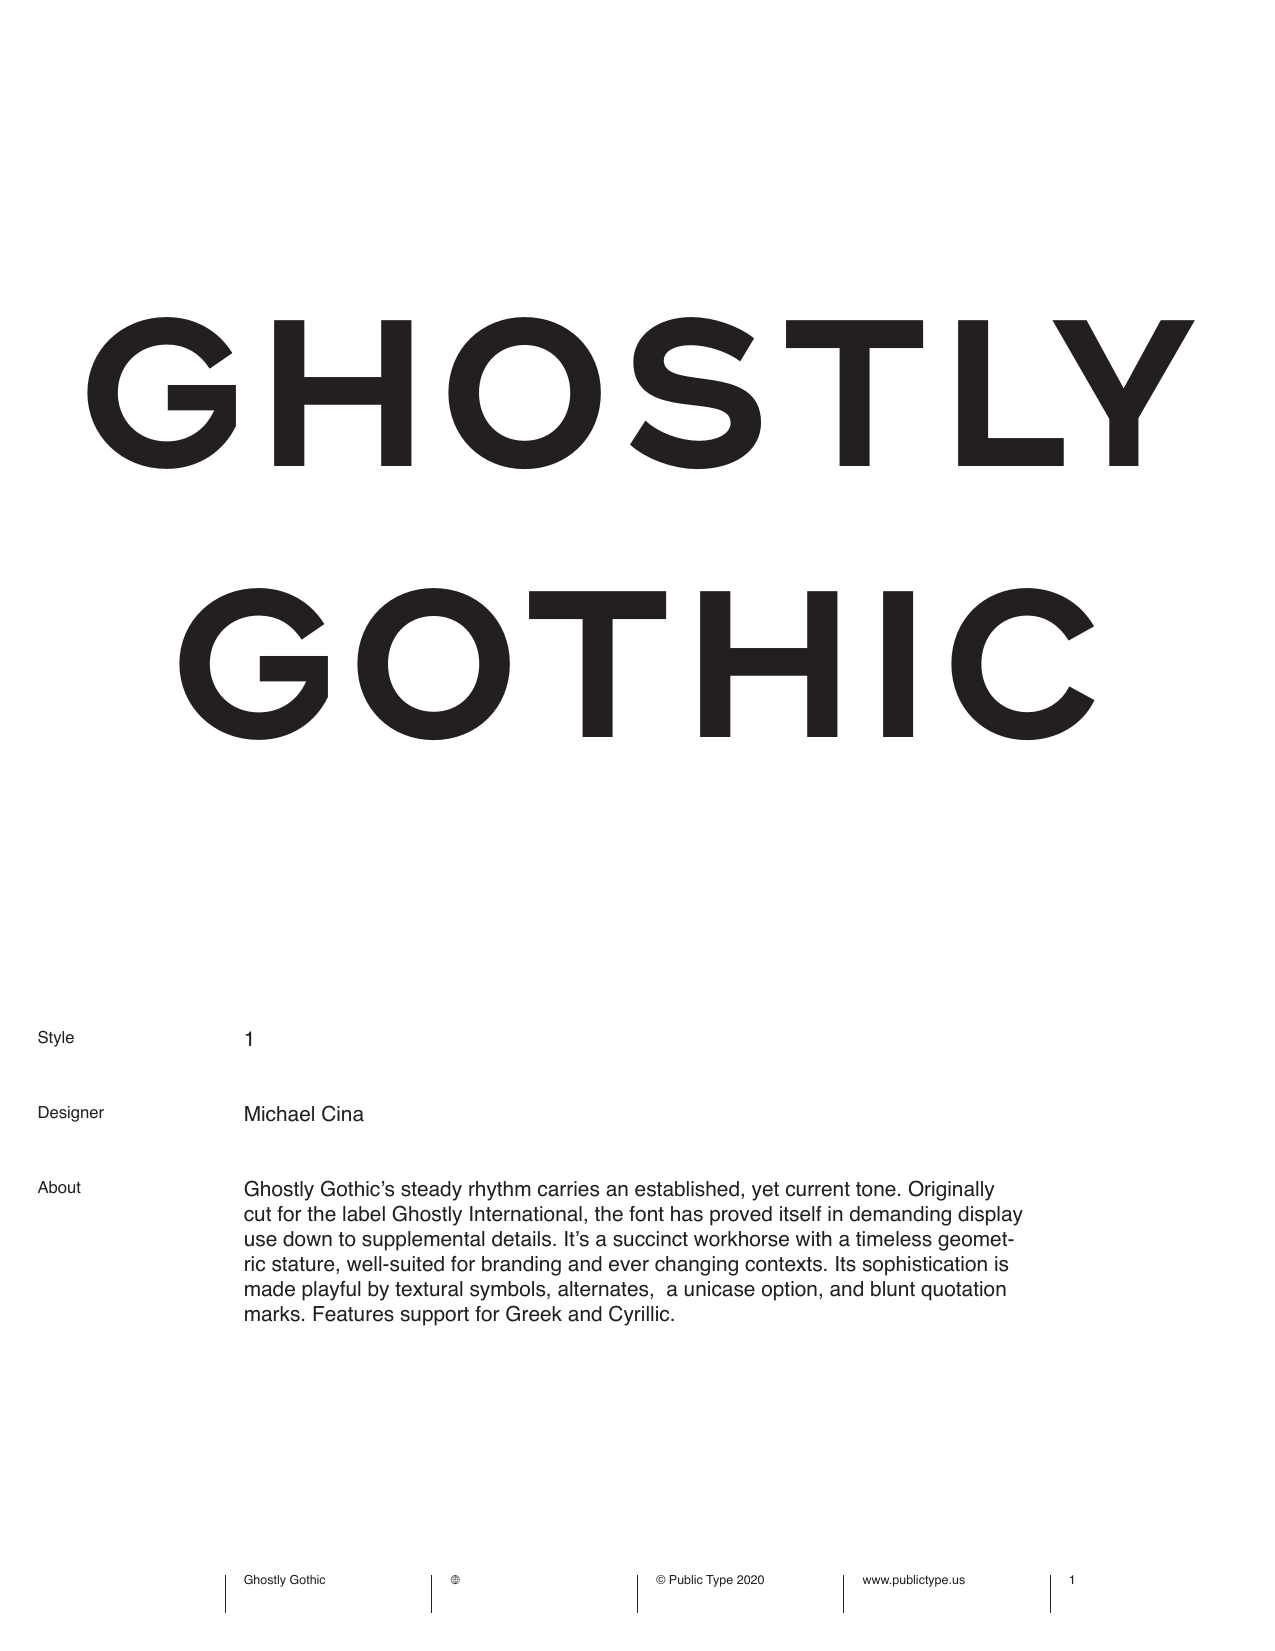 Public Type Ghostly Gothic